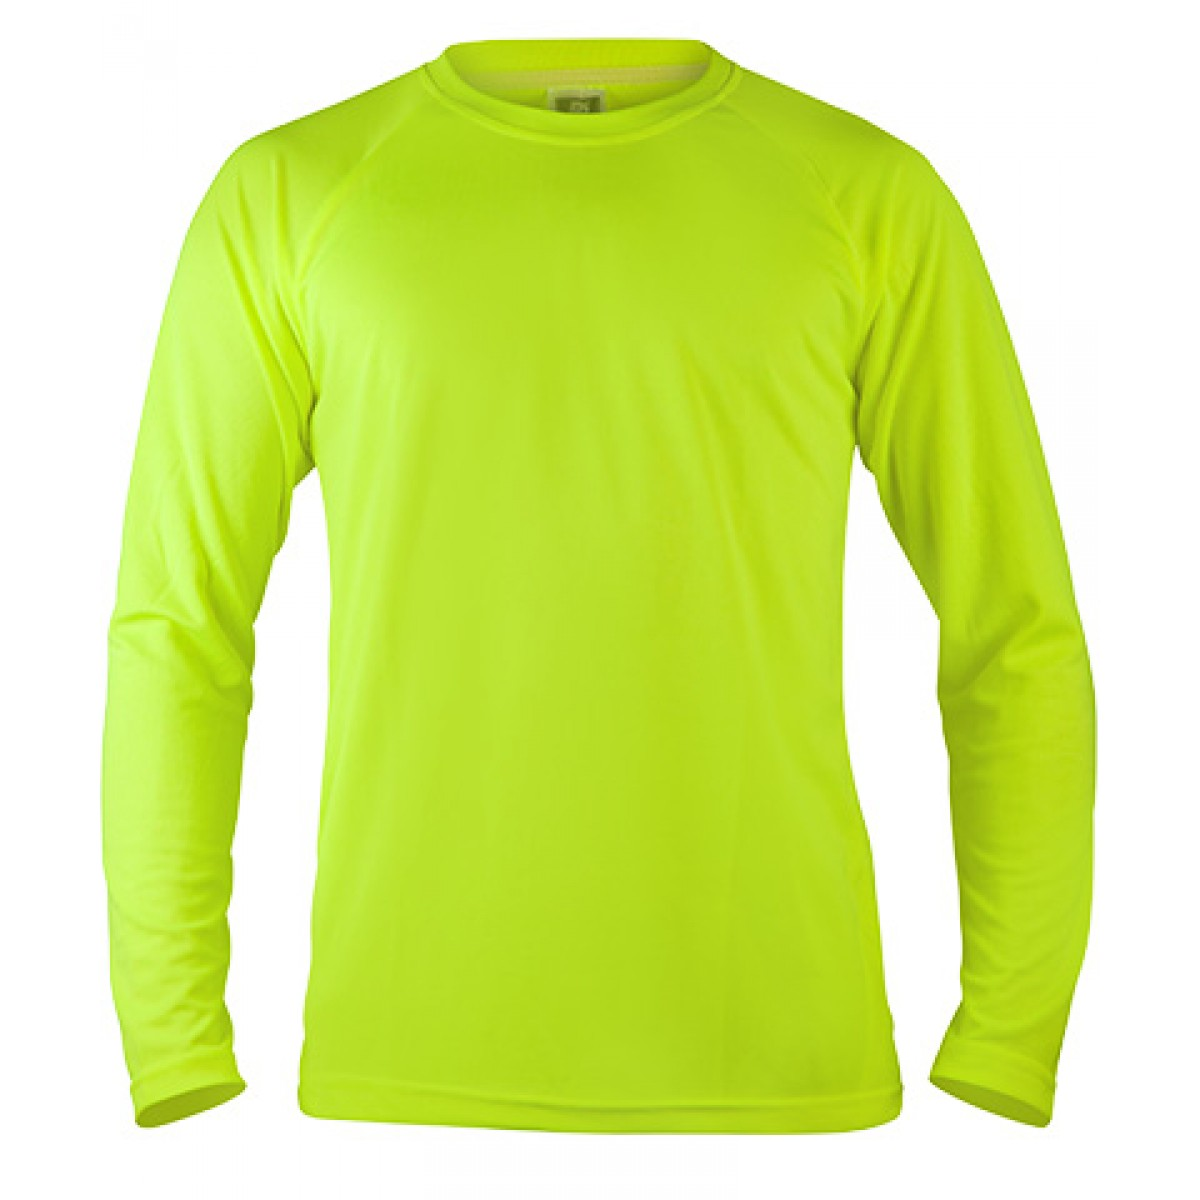 Long Sleeve Performance -Safety Green-L